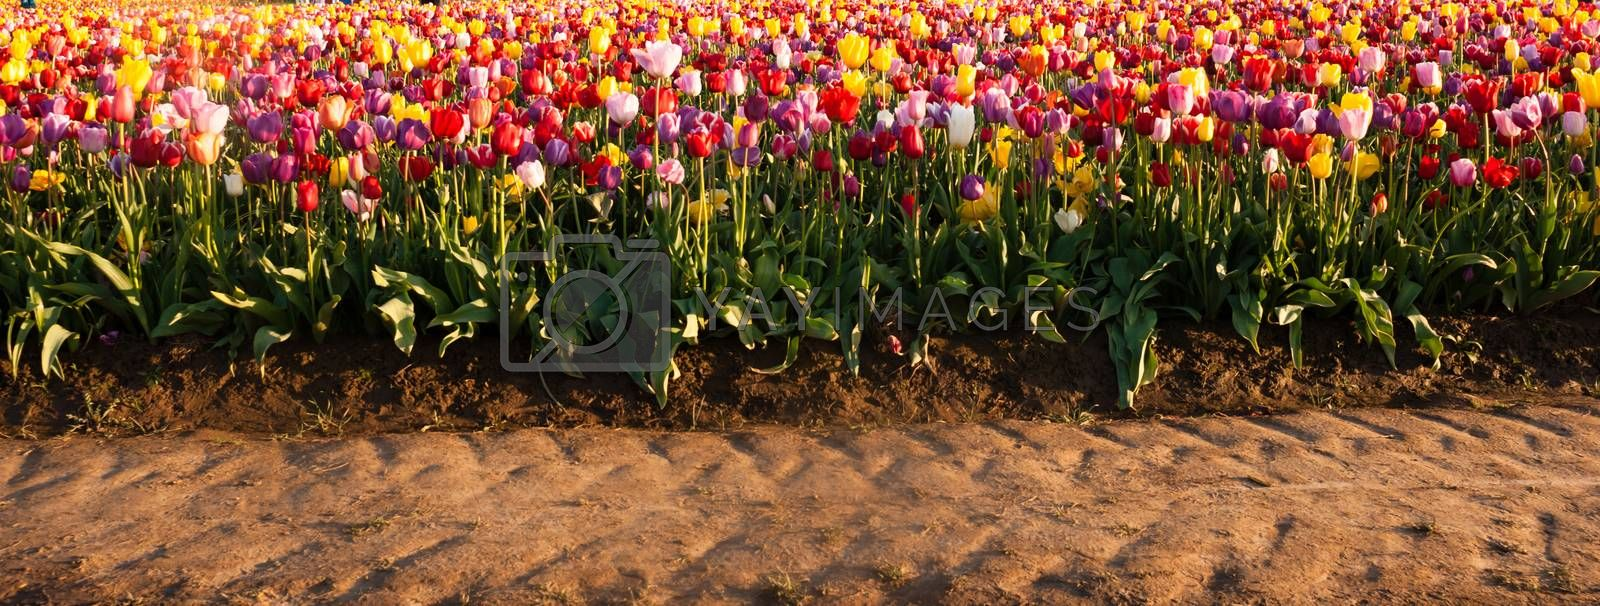 Royalty free image of Neat Rows Tulips Colorful Flowers Farmer's Bulb Farm Tractor Path by ChrisBoswell